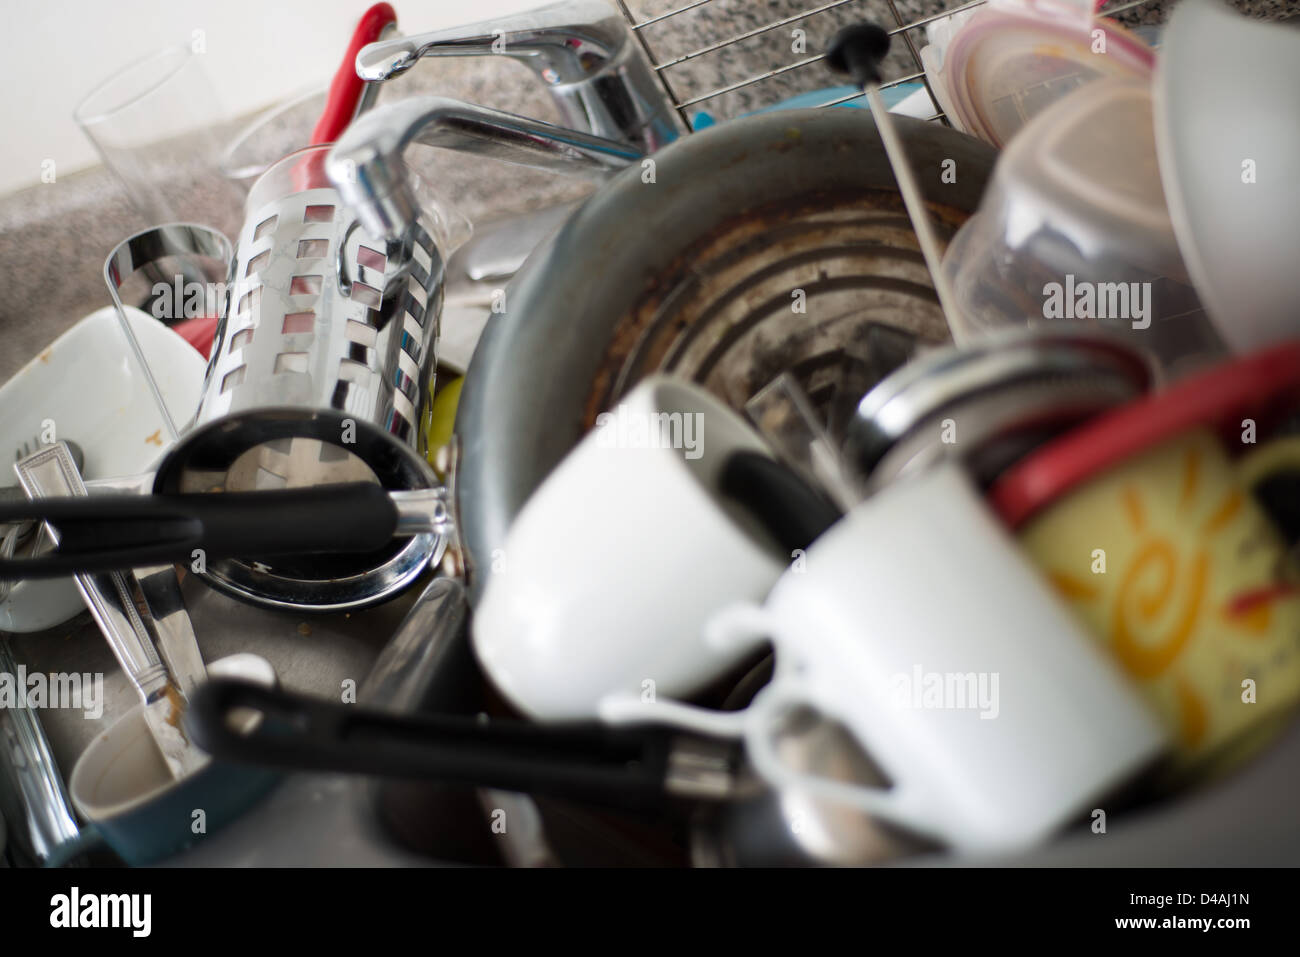 This is an image of a sink full of dirty dishes. - Stock Image